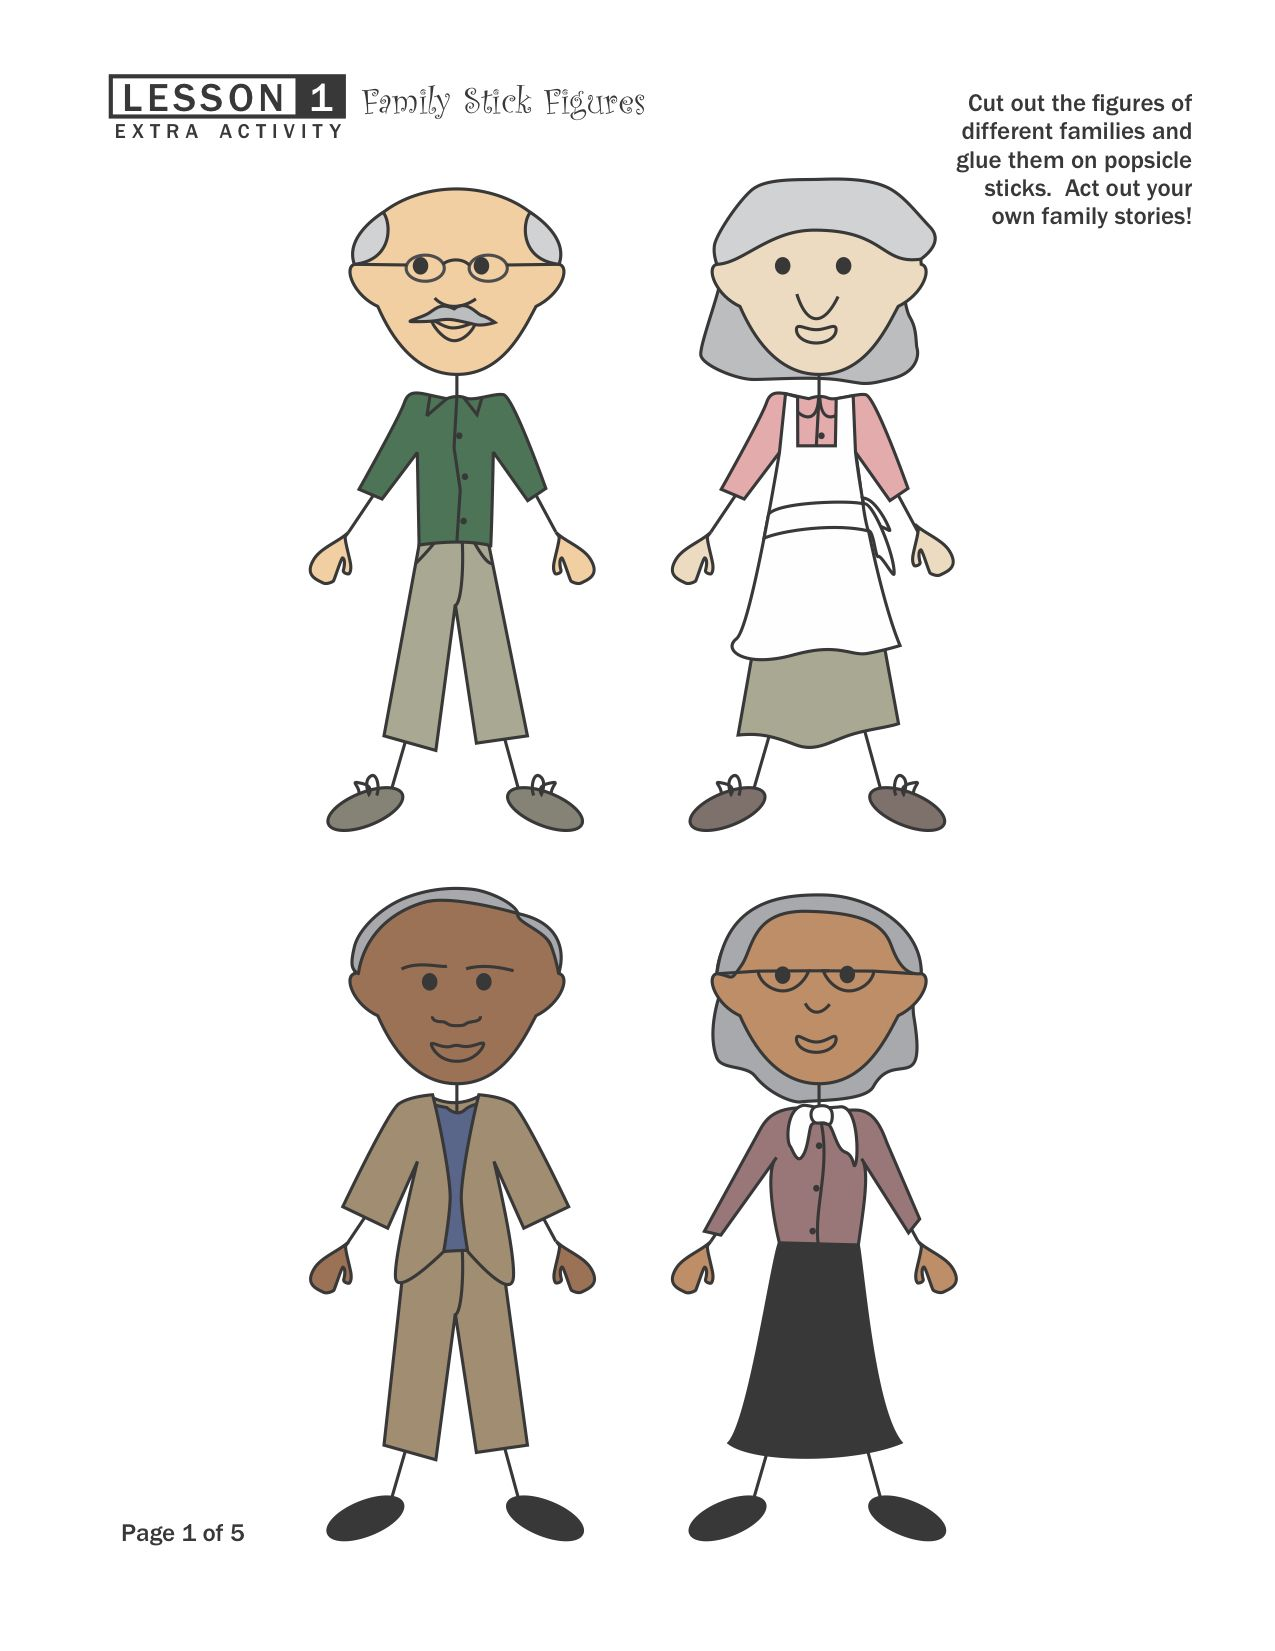 Family Cutouts From Ourtimetolearn Good For Fhe Activity Make Puppets With Popsicle